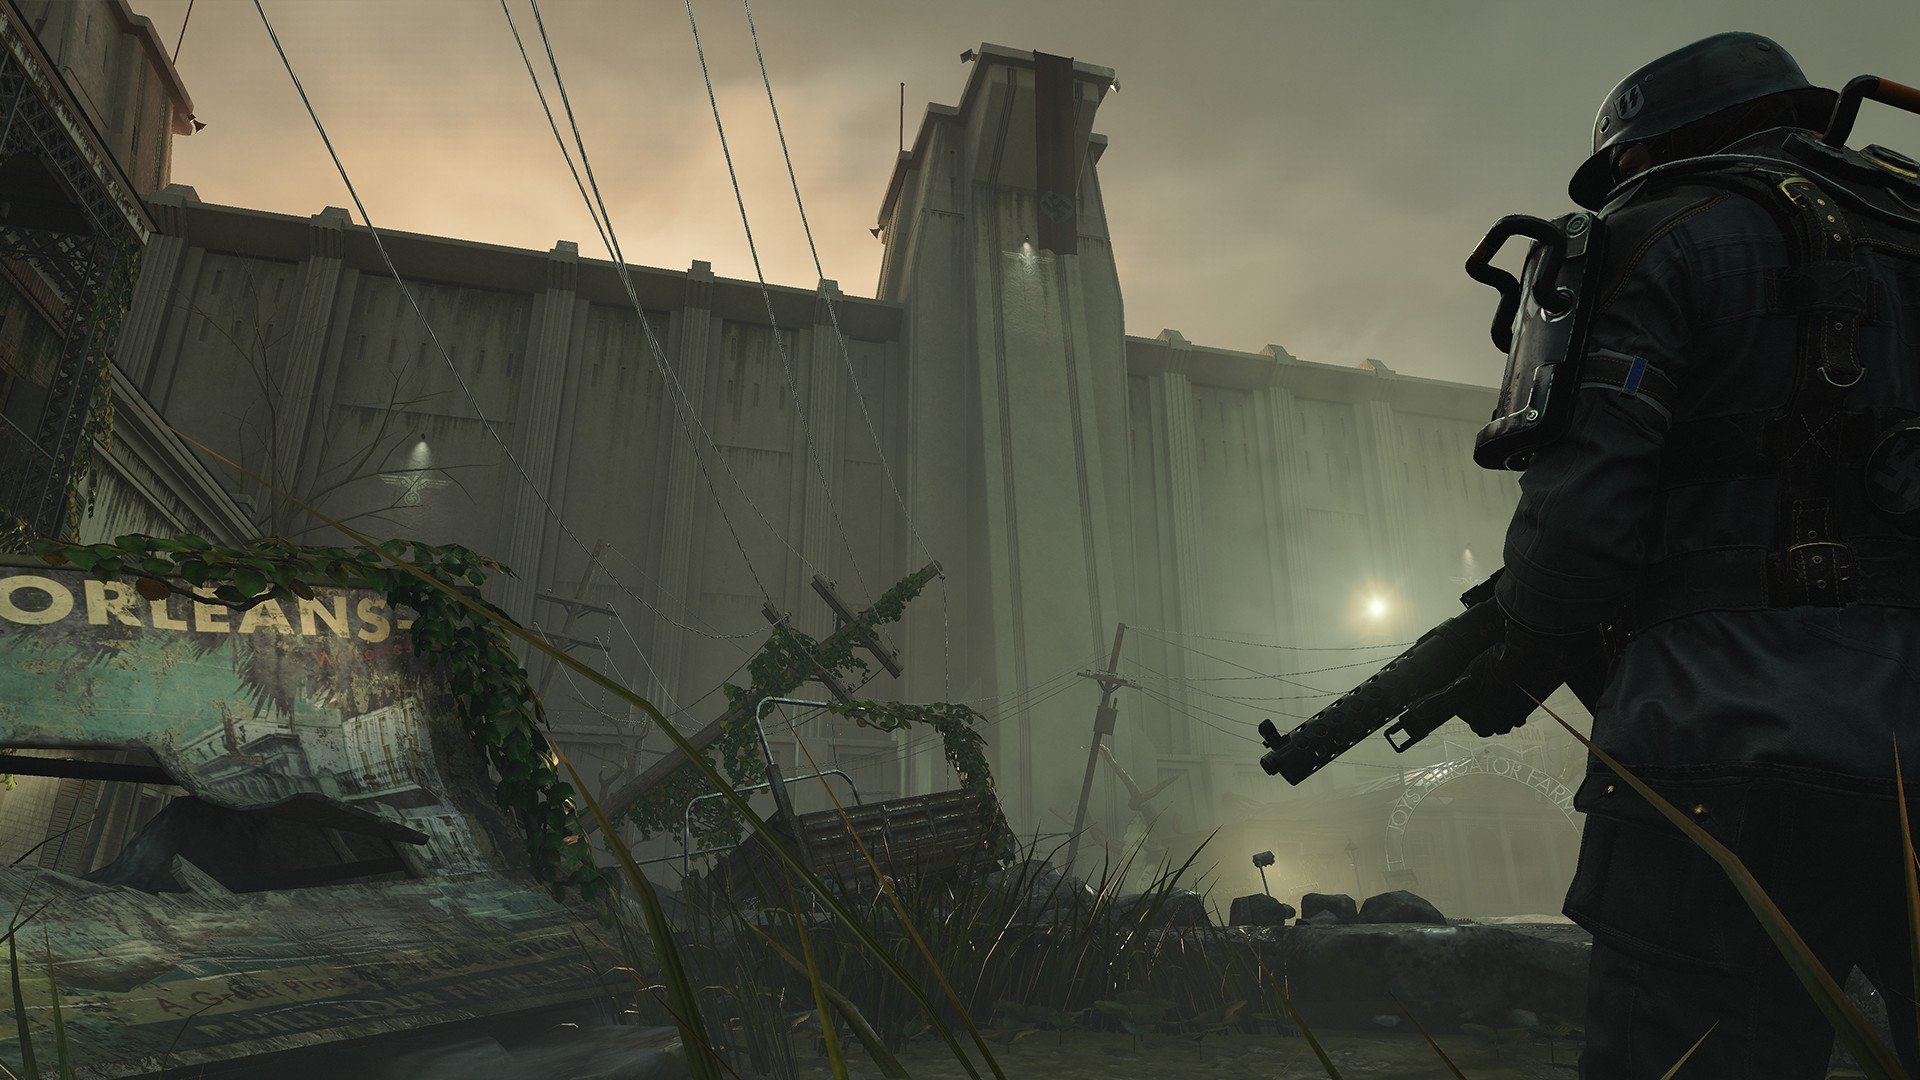 wolfenstein-2-the-new-colossus-screenshot-machinegames-first-person-shooter-playstation-4-xbox-one-pc-steam